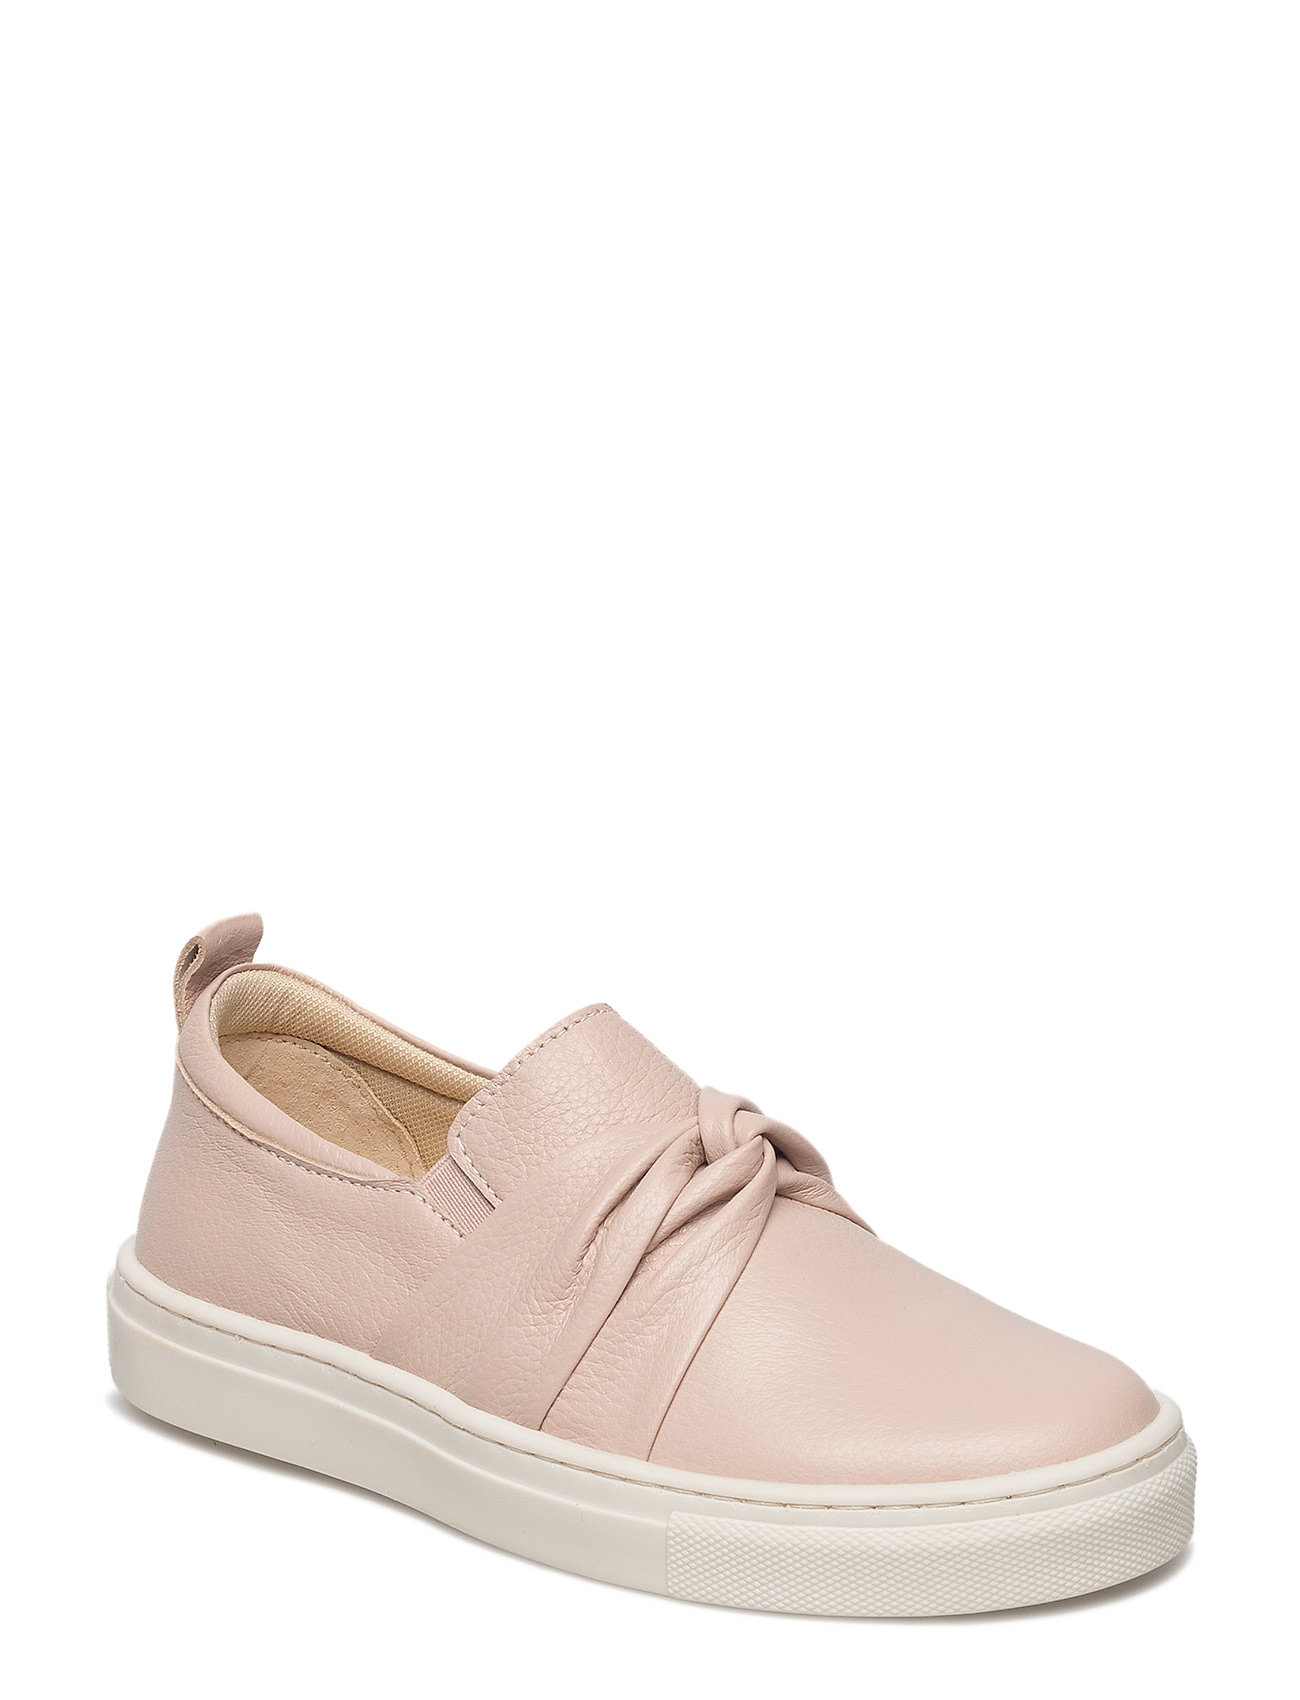 Girls - Sneaker With Knot thumbnail